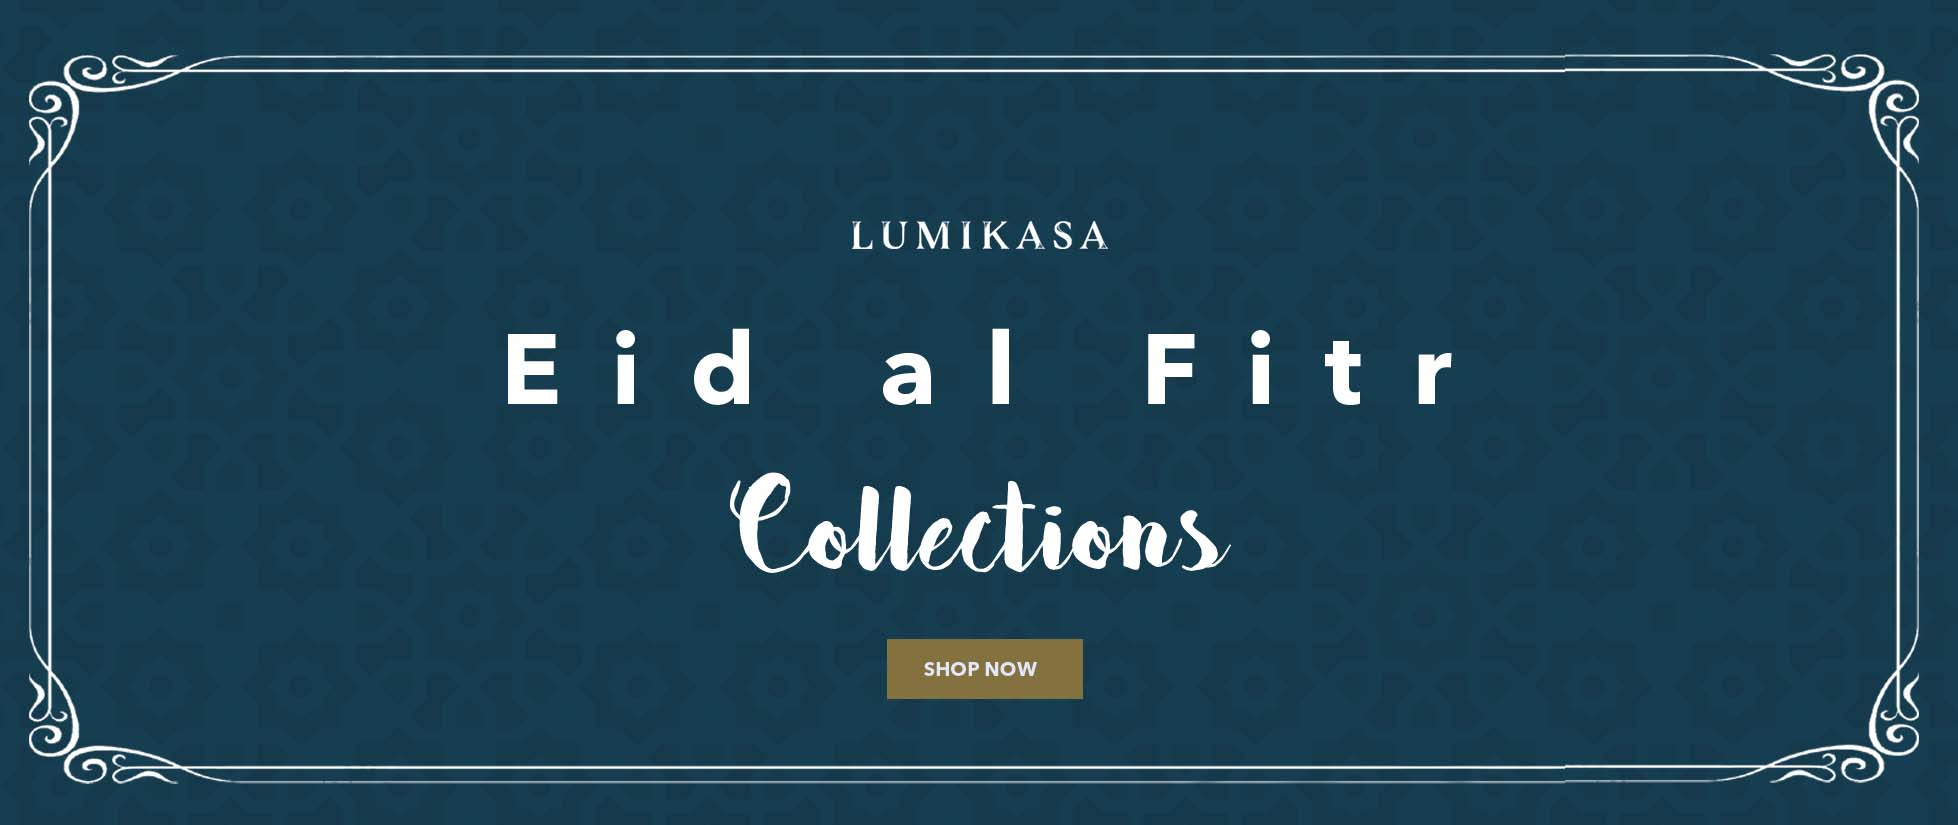 Eid Al Fitr Collections